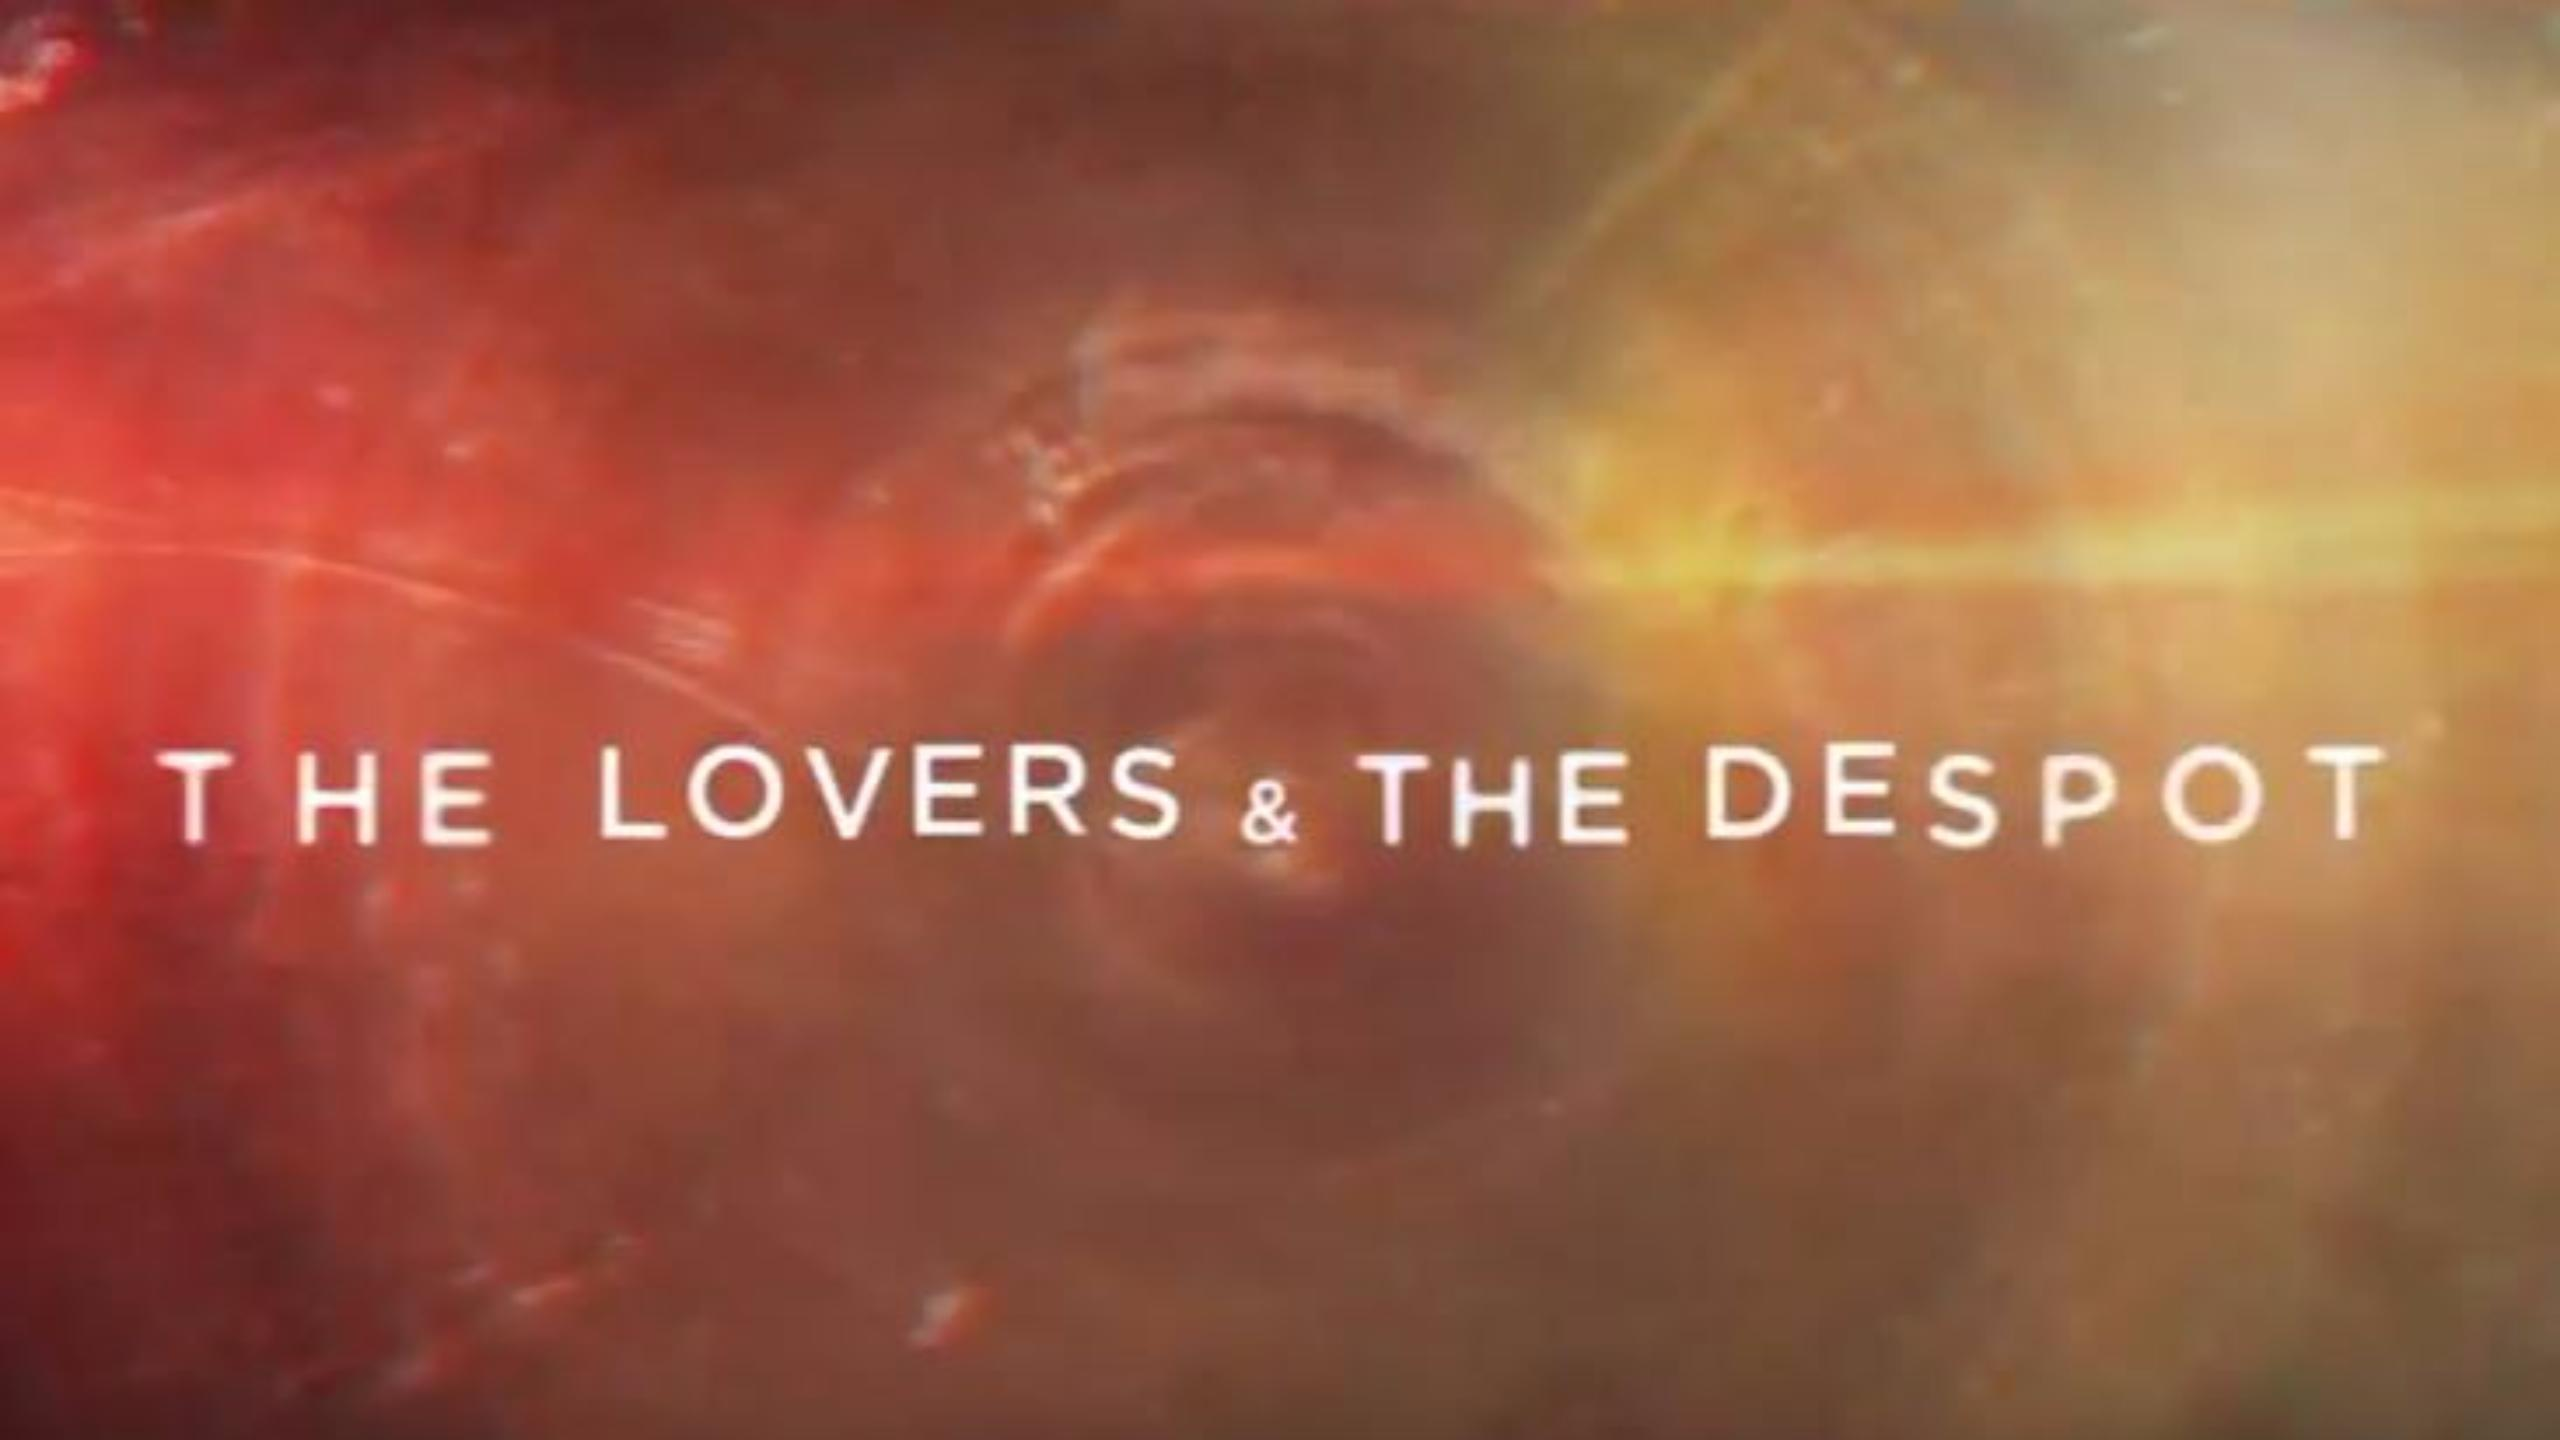 The Lovers and the Despot (Official Trailer)